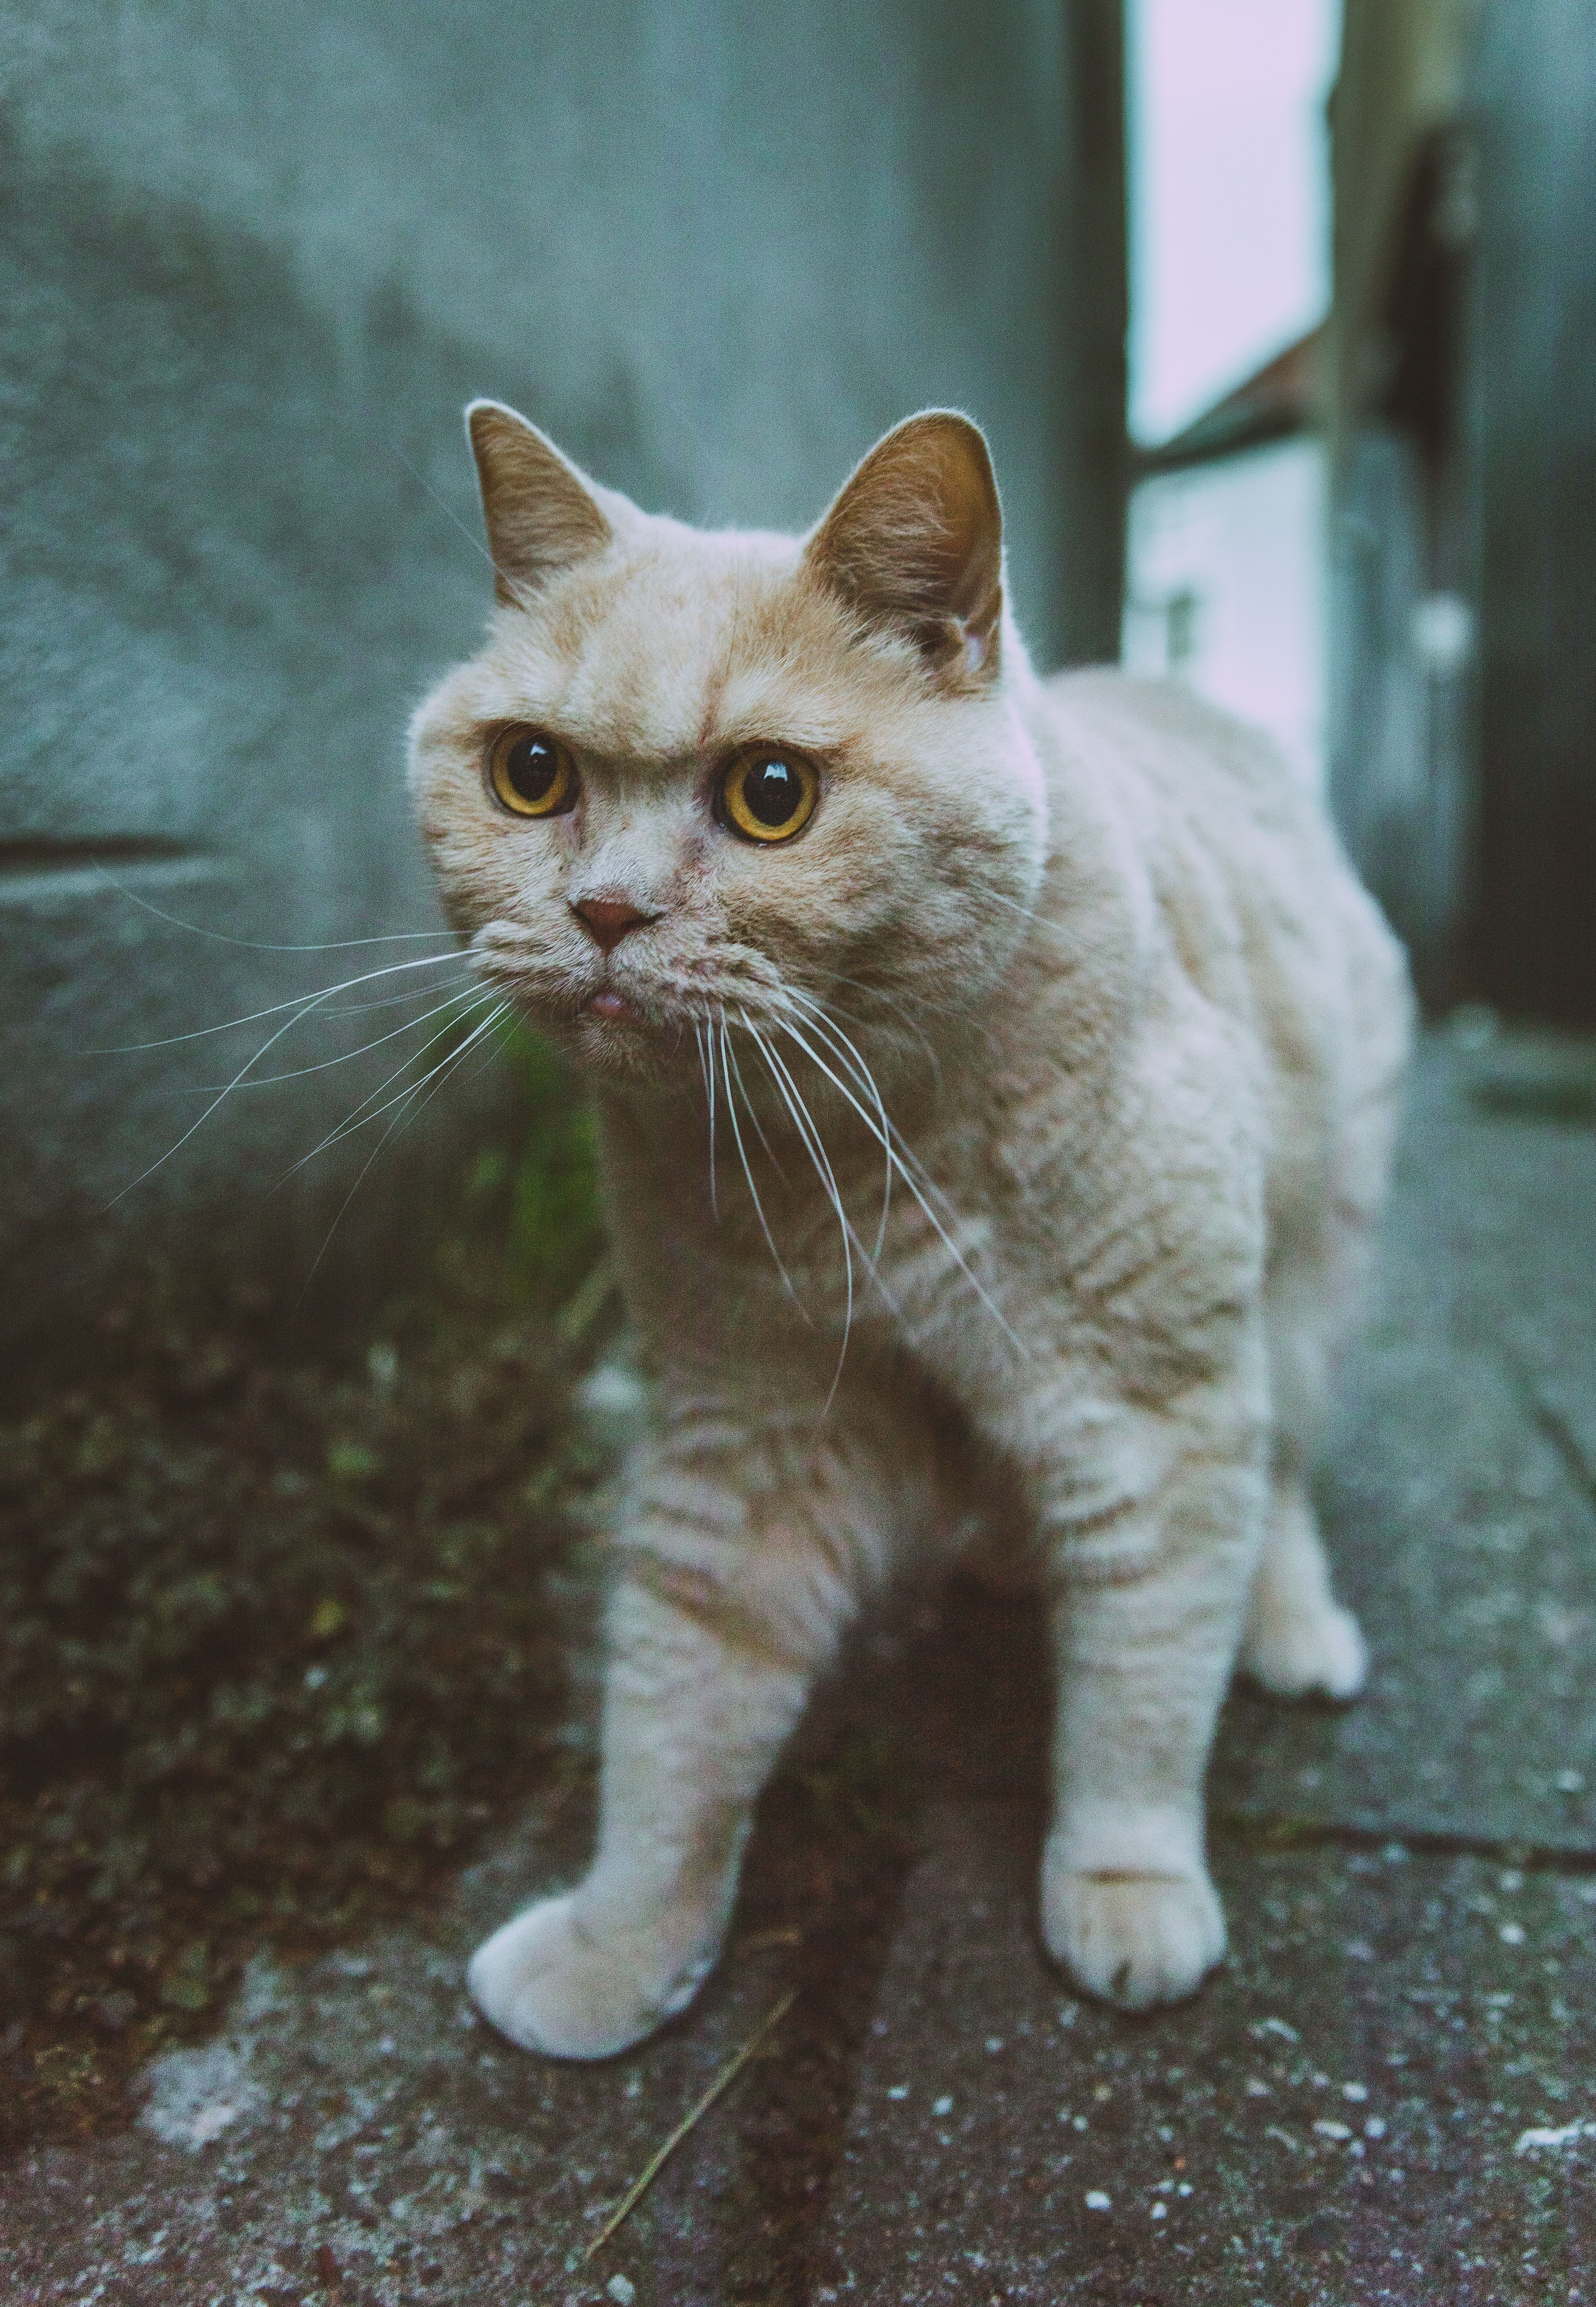 Top 6 Signs That Show Your Cat Is Happy Welfar4us In 2020 Cat Pics Cats And Kittens Beautiful Cats Pictures